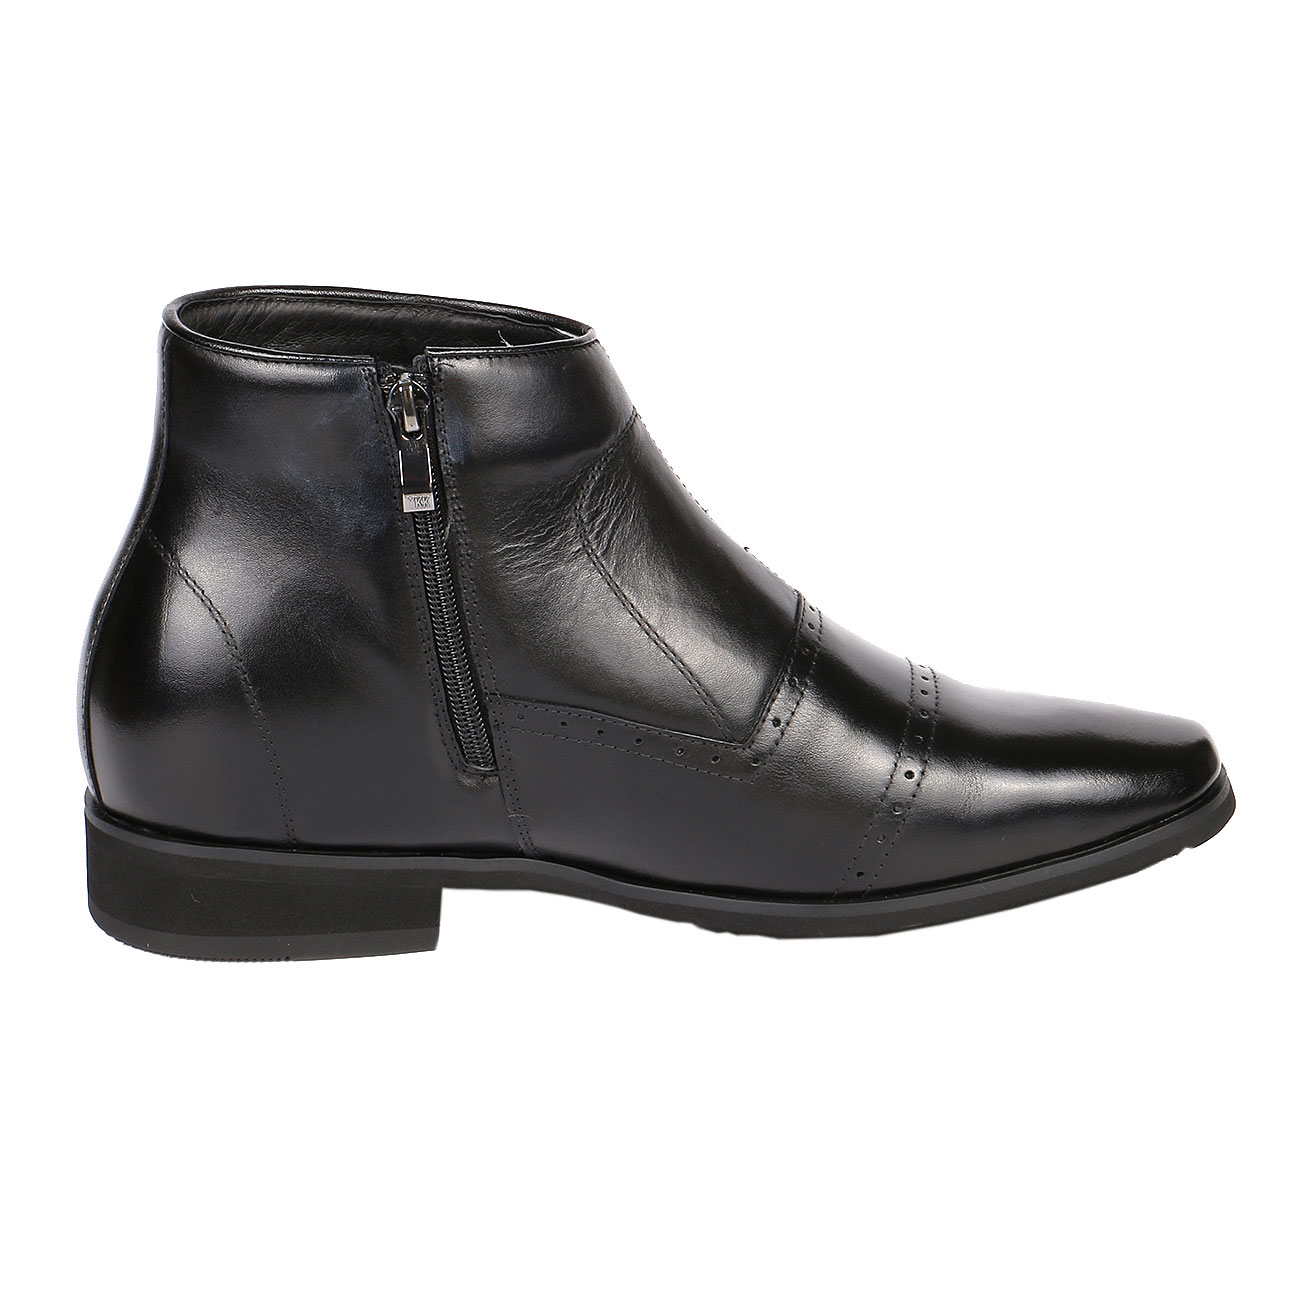 Jota Midtown Cap Toe Zip Boot 2.8